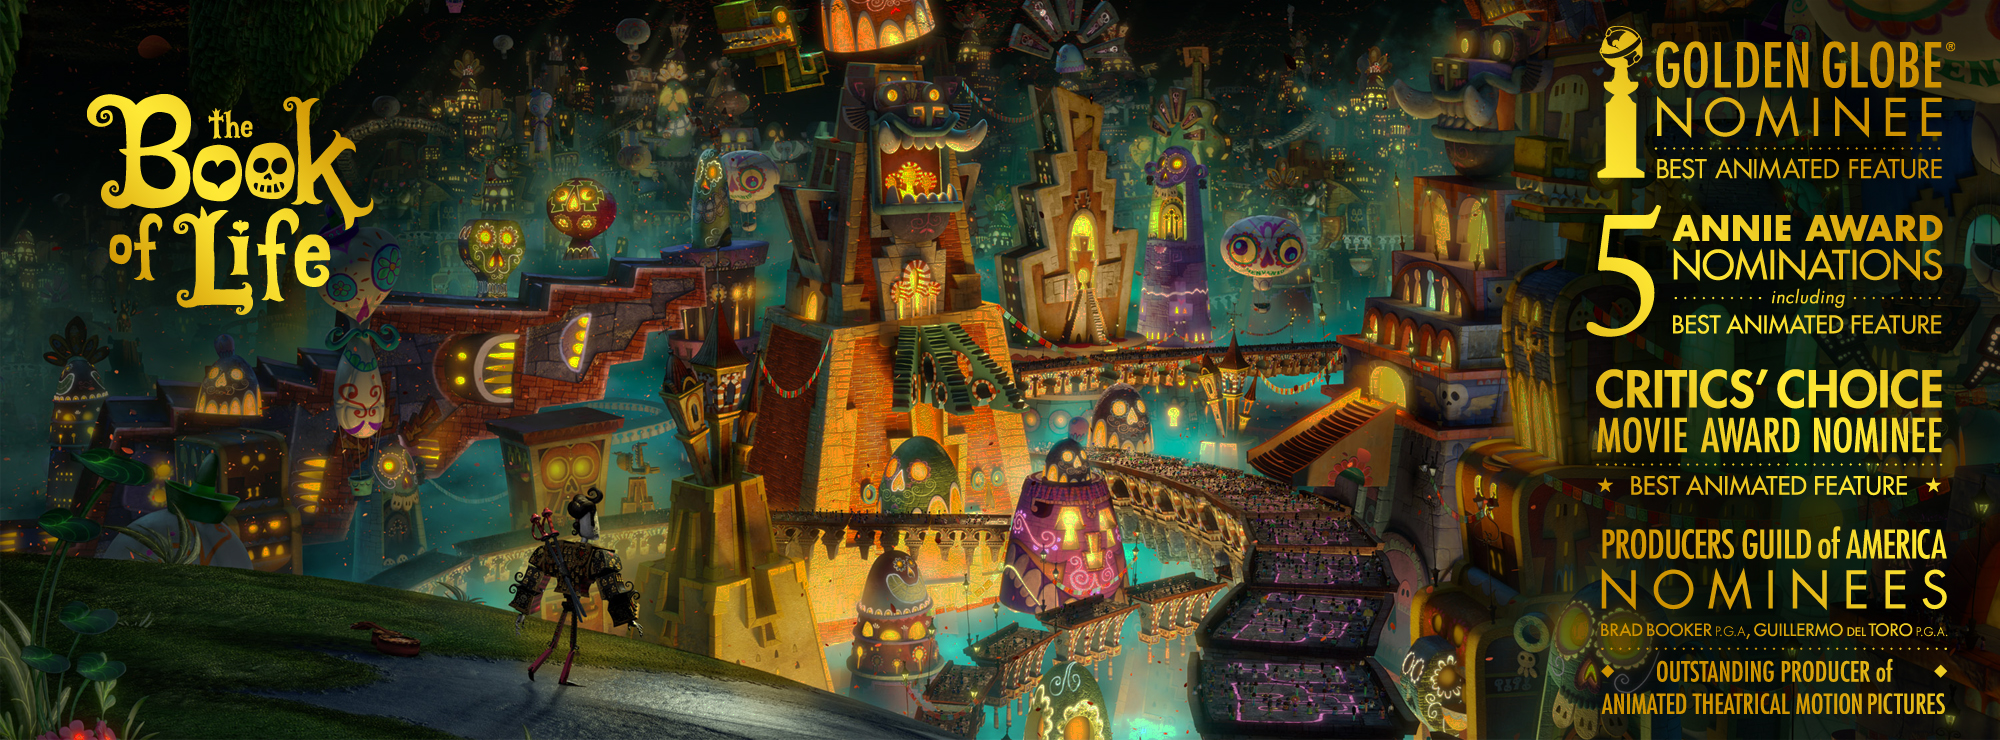 THE BOOK OF LIFE  |  20TH CENTURY FOX / REEL FX ANIMATION |  RÉALISATEUR : JORGE R. GUTIERREZ /  PRODUCTEUR EXÉCUTIF : GUILLERMO DEL TORO | 2014